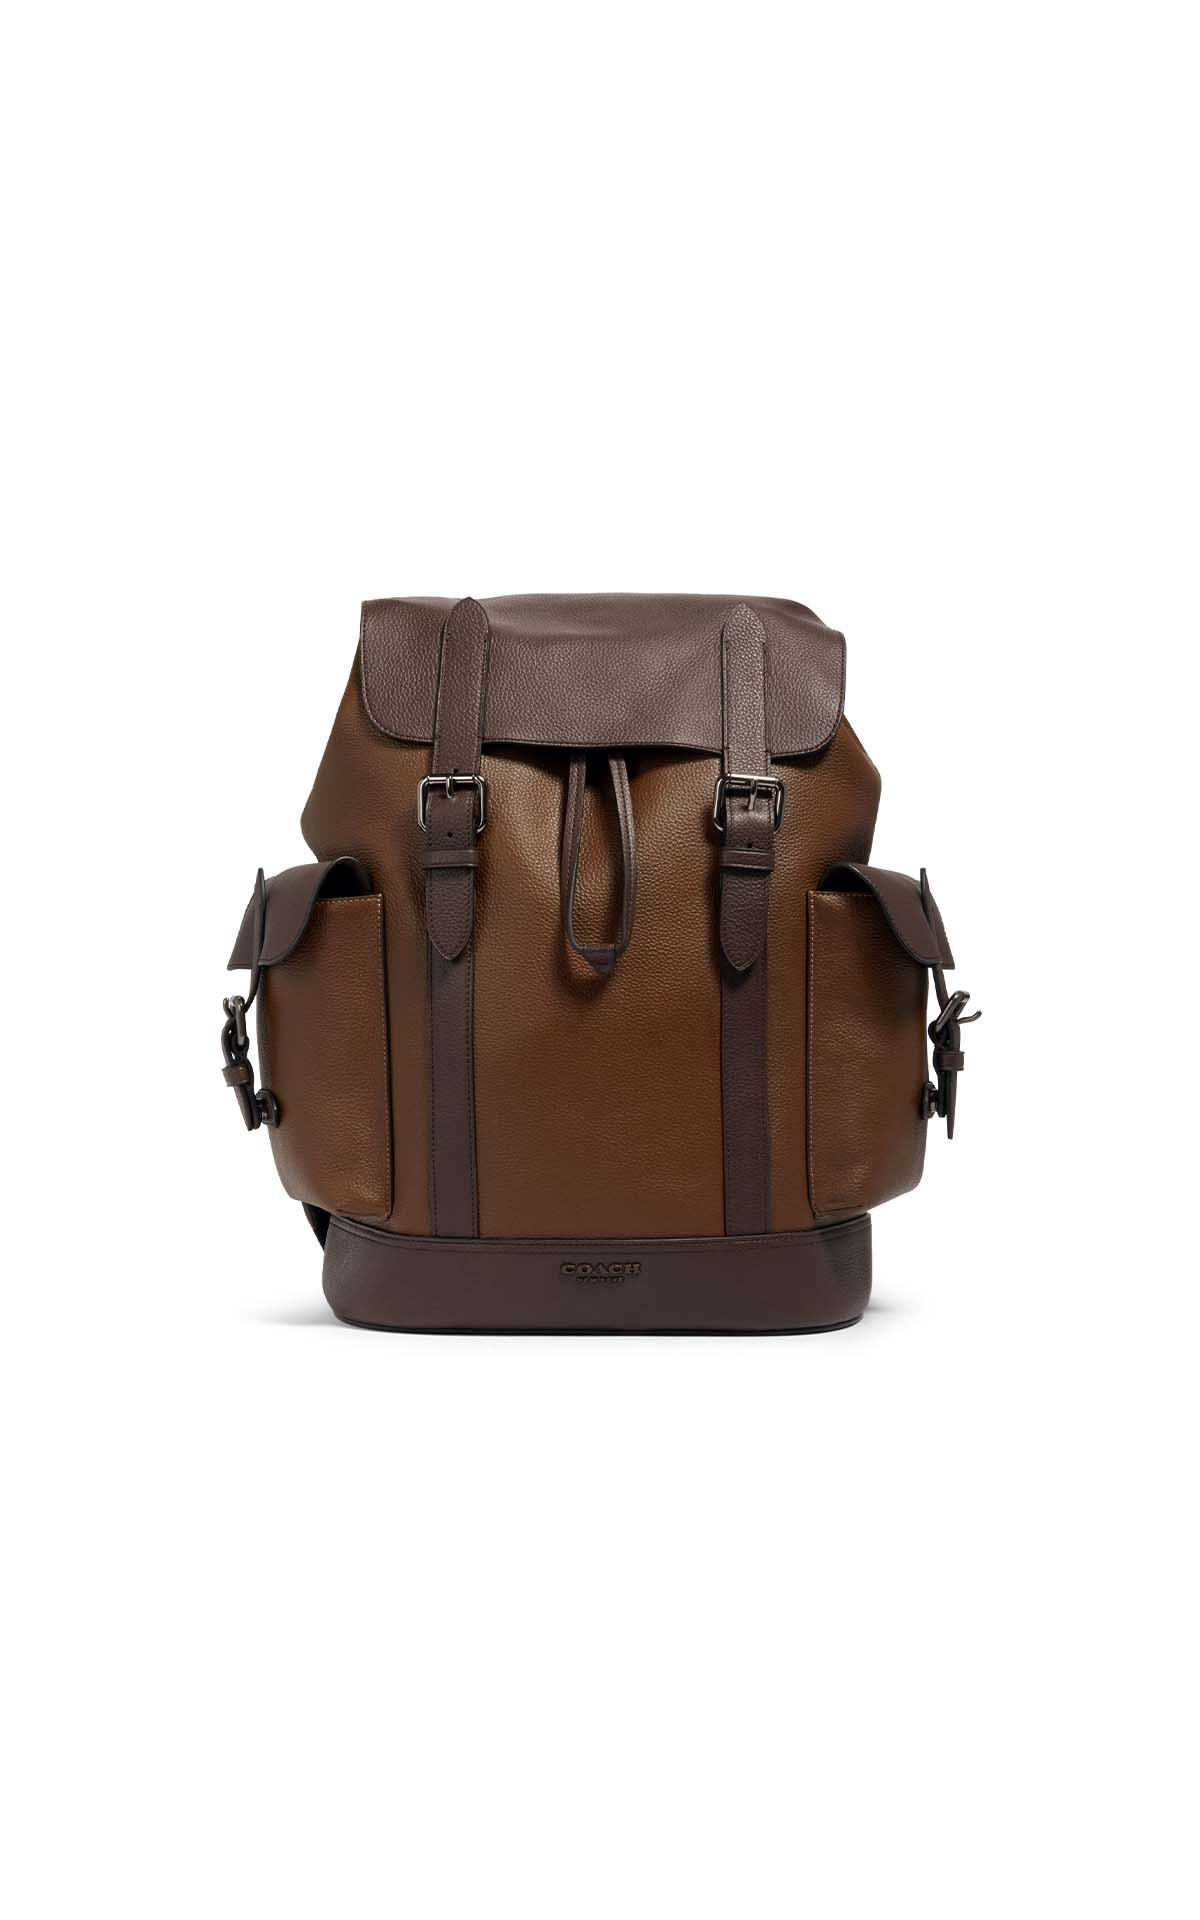 Coach Hudson Backpack in Heritage Colorblock in tobacco/mahogany at The Bicester Village Shopping Collection